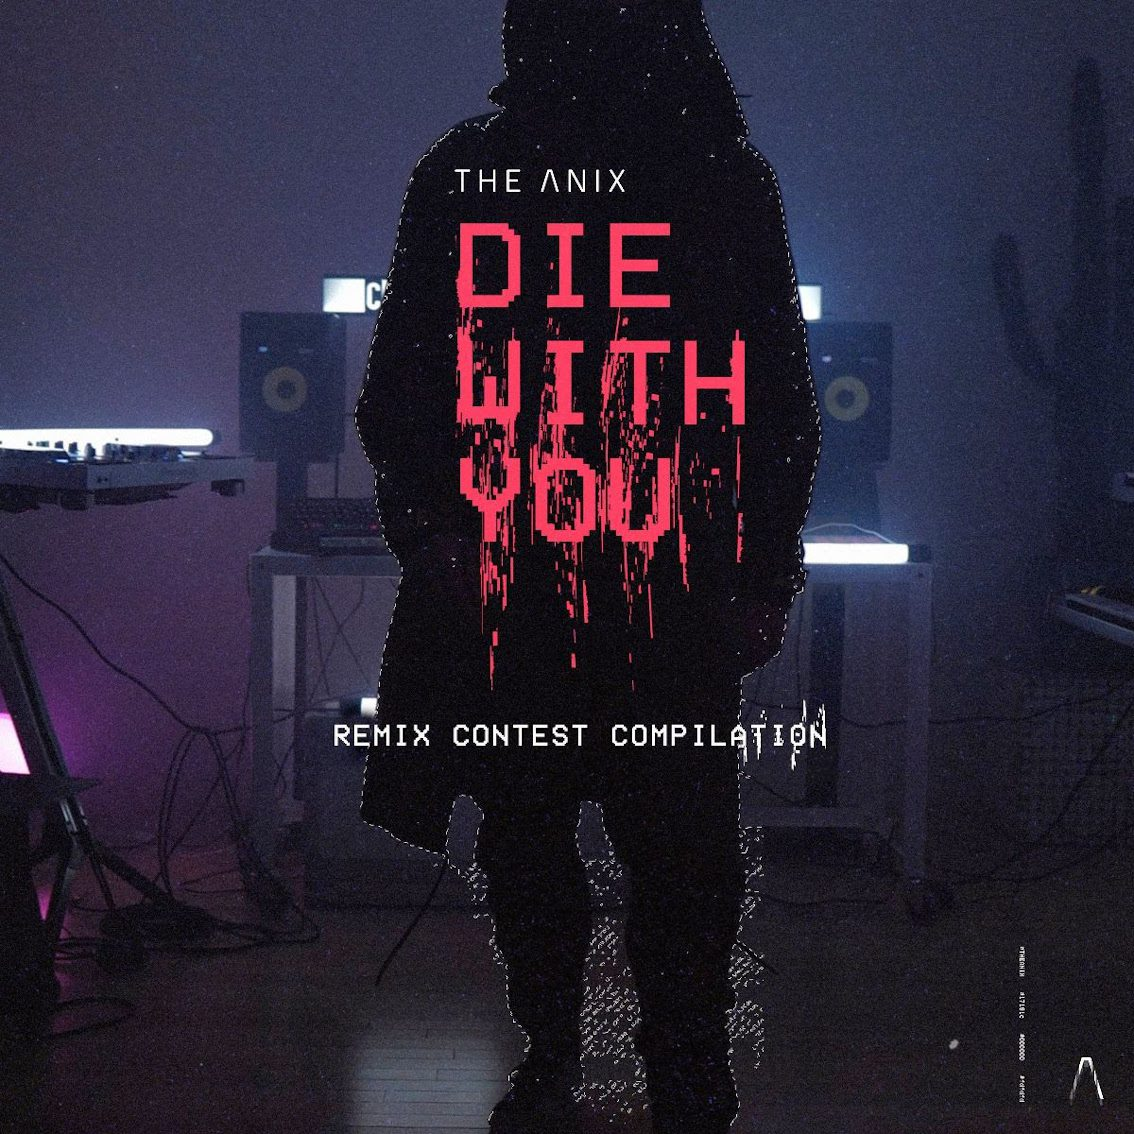 The Anix to launch 'Die With You Remix Contest Compilation' remix album